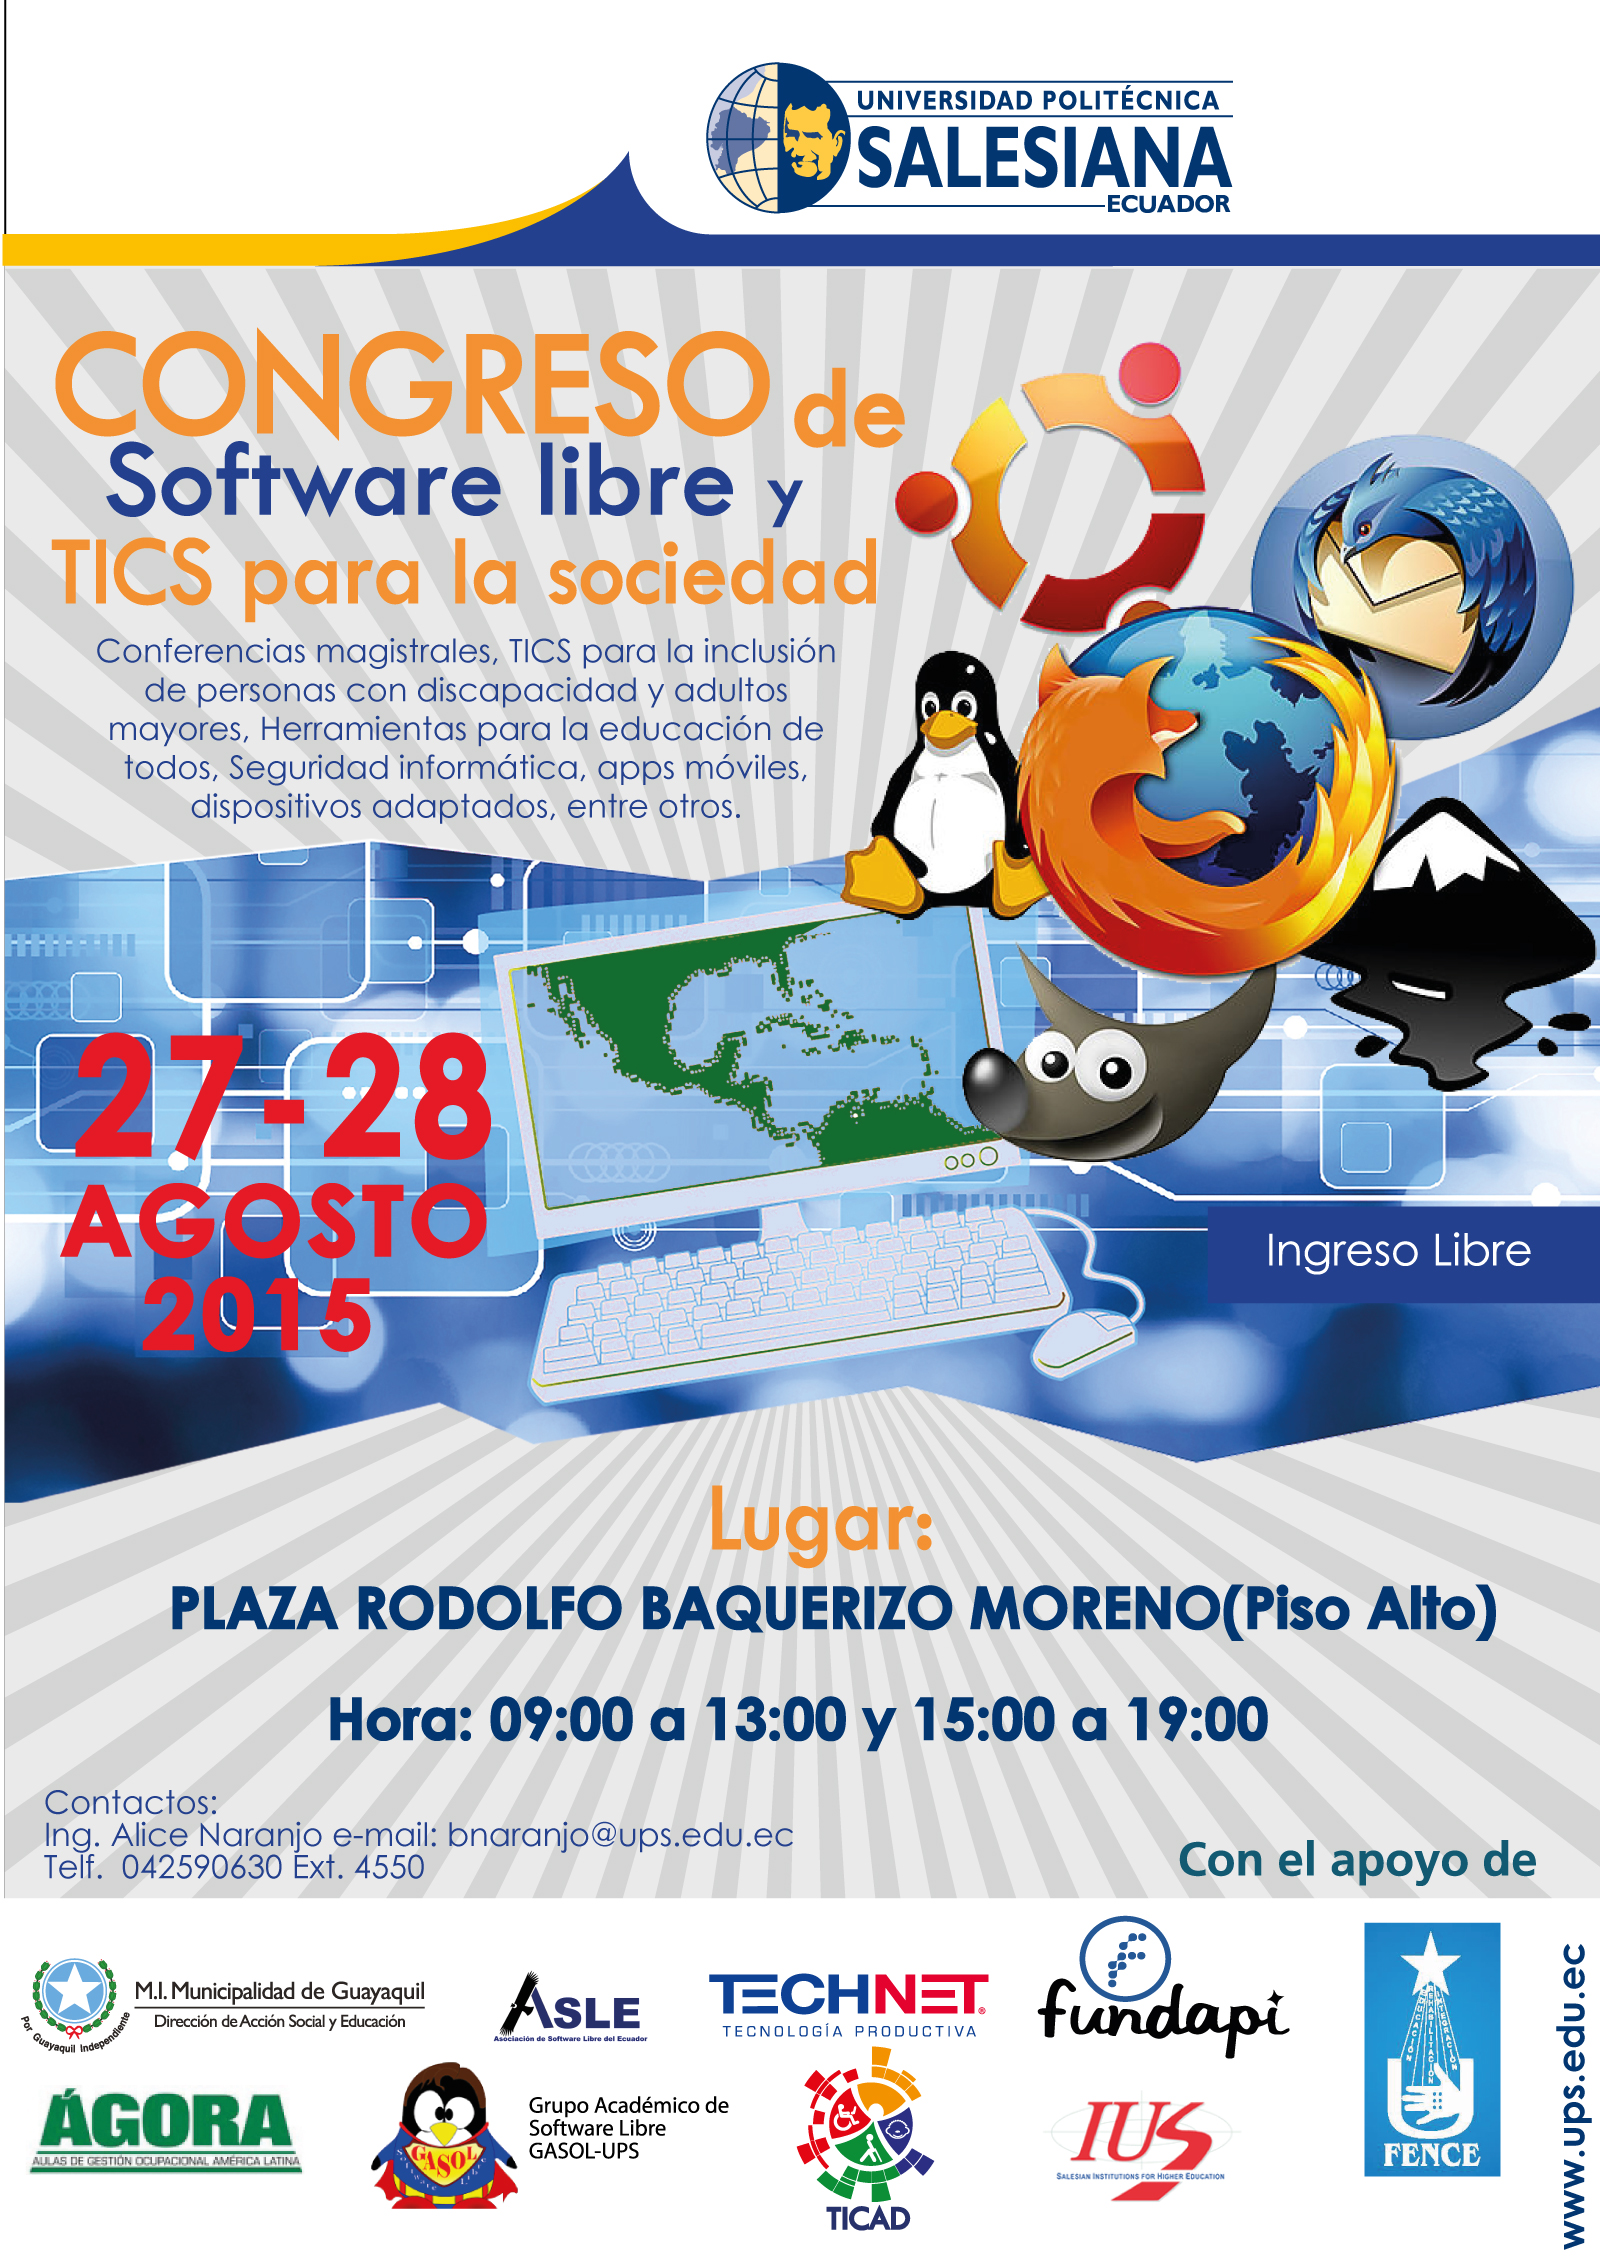 CONGRESO-DE-SOFTWARE-LIBRE-Y-TICS final